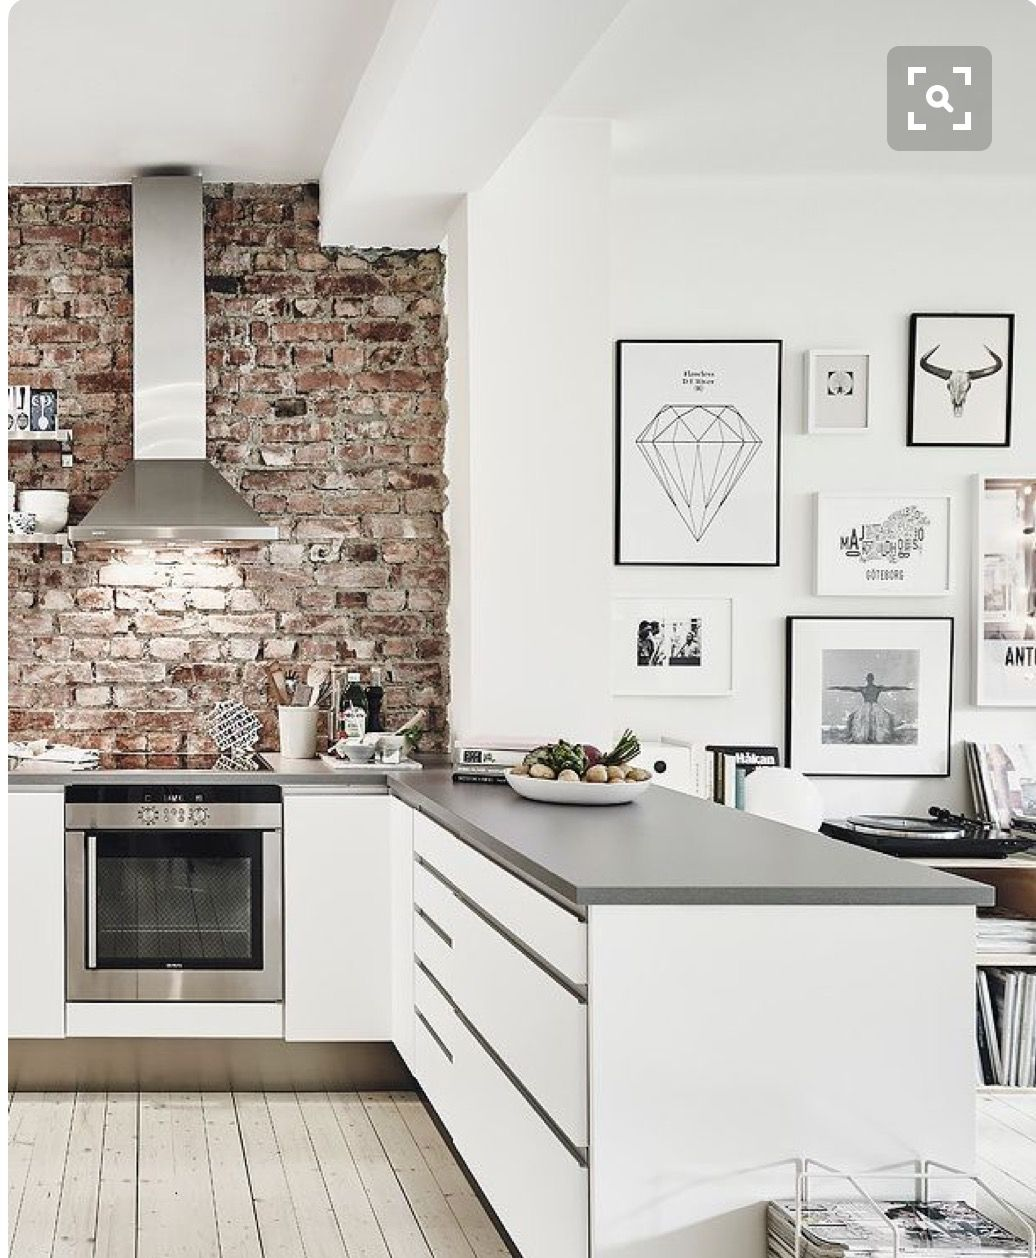 Kitchen Selection With A Minimalist Design Using Bricks Is A Lot Popular  Today. Exposed Brick Walls Can Give Amazing Feel And Rustic Impression To  Any Room ...